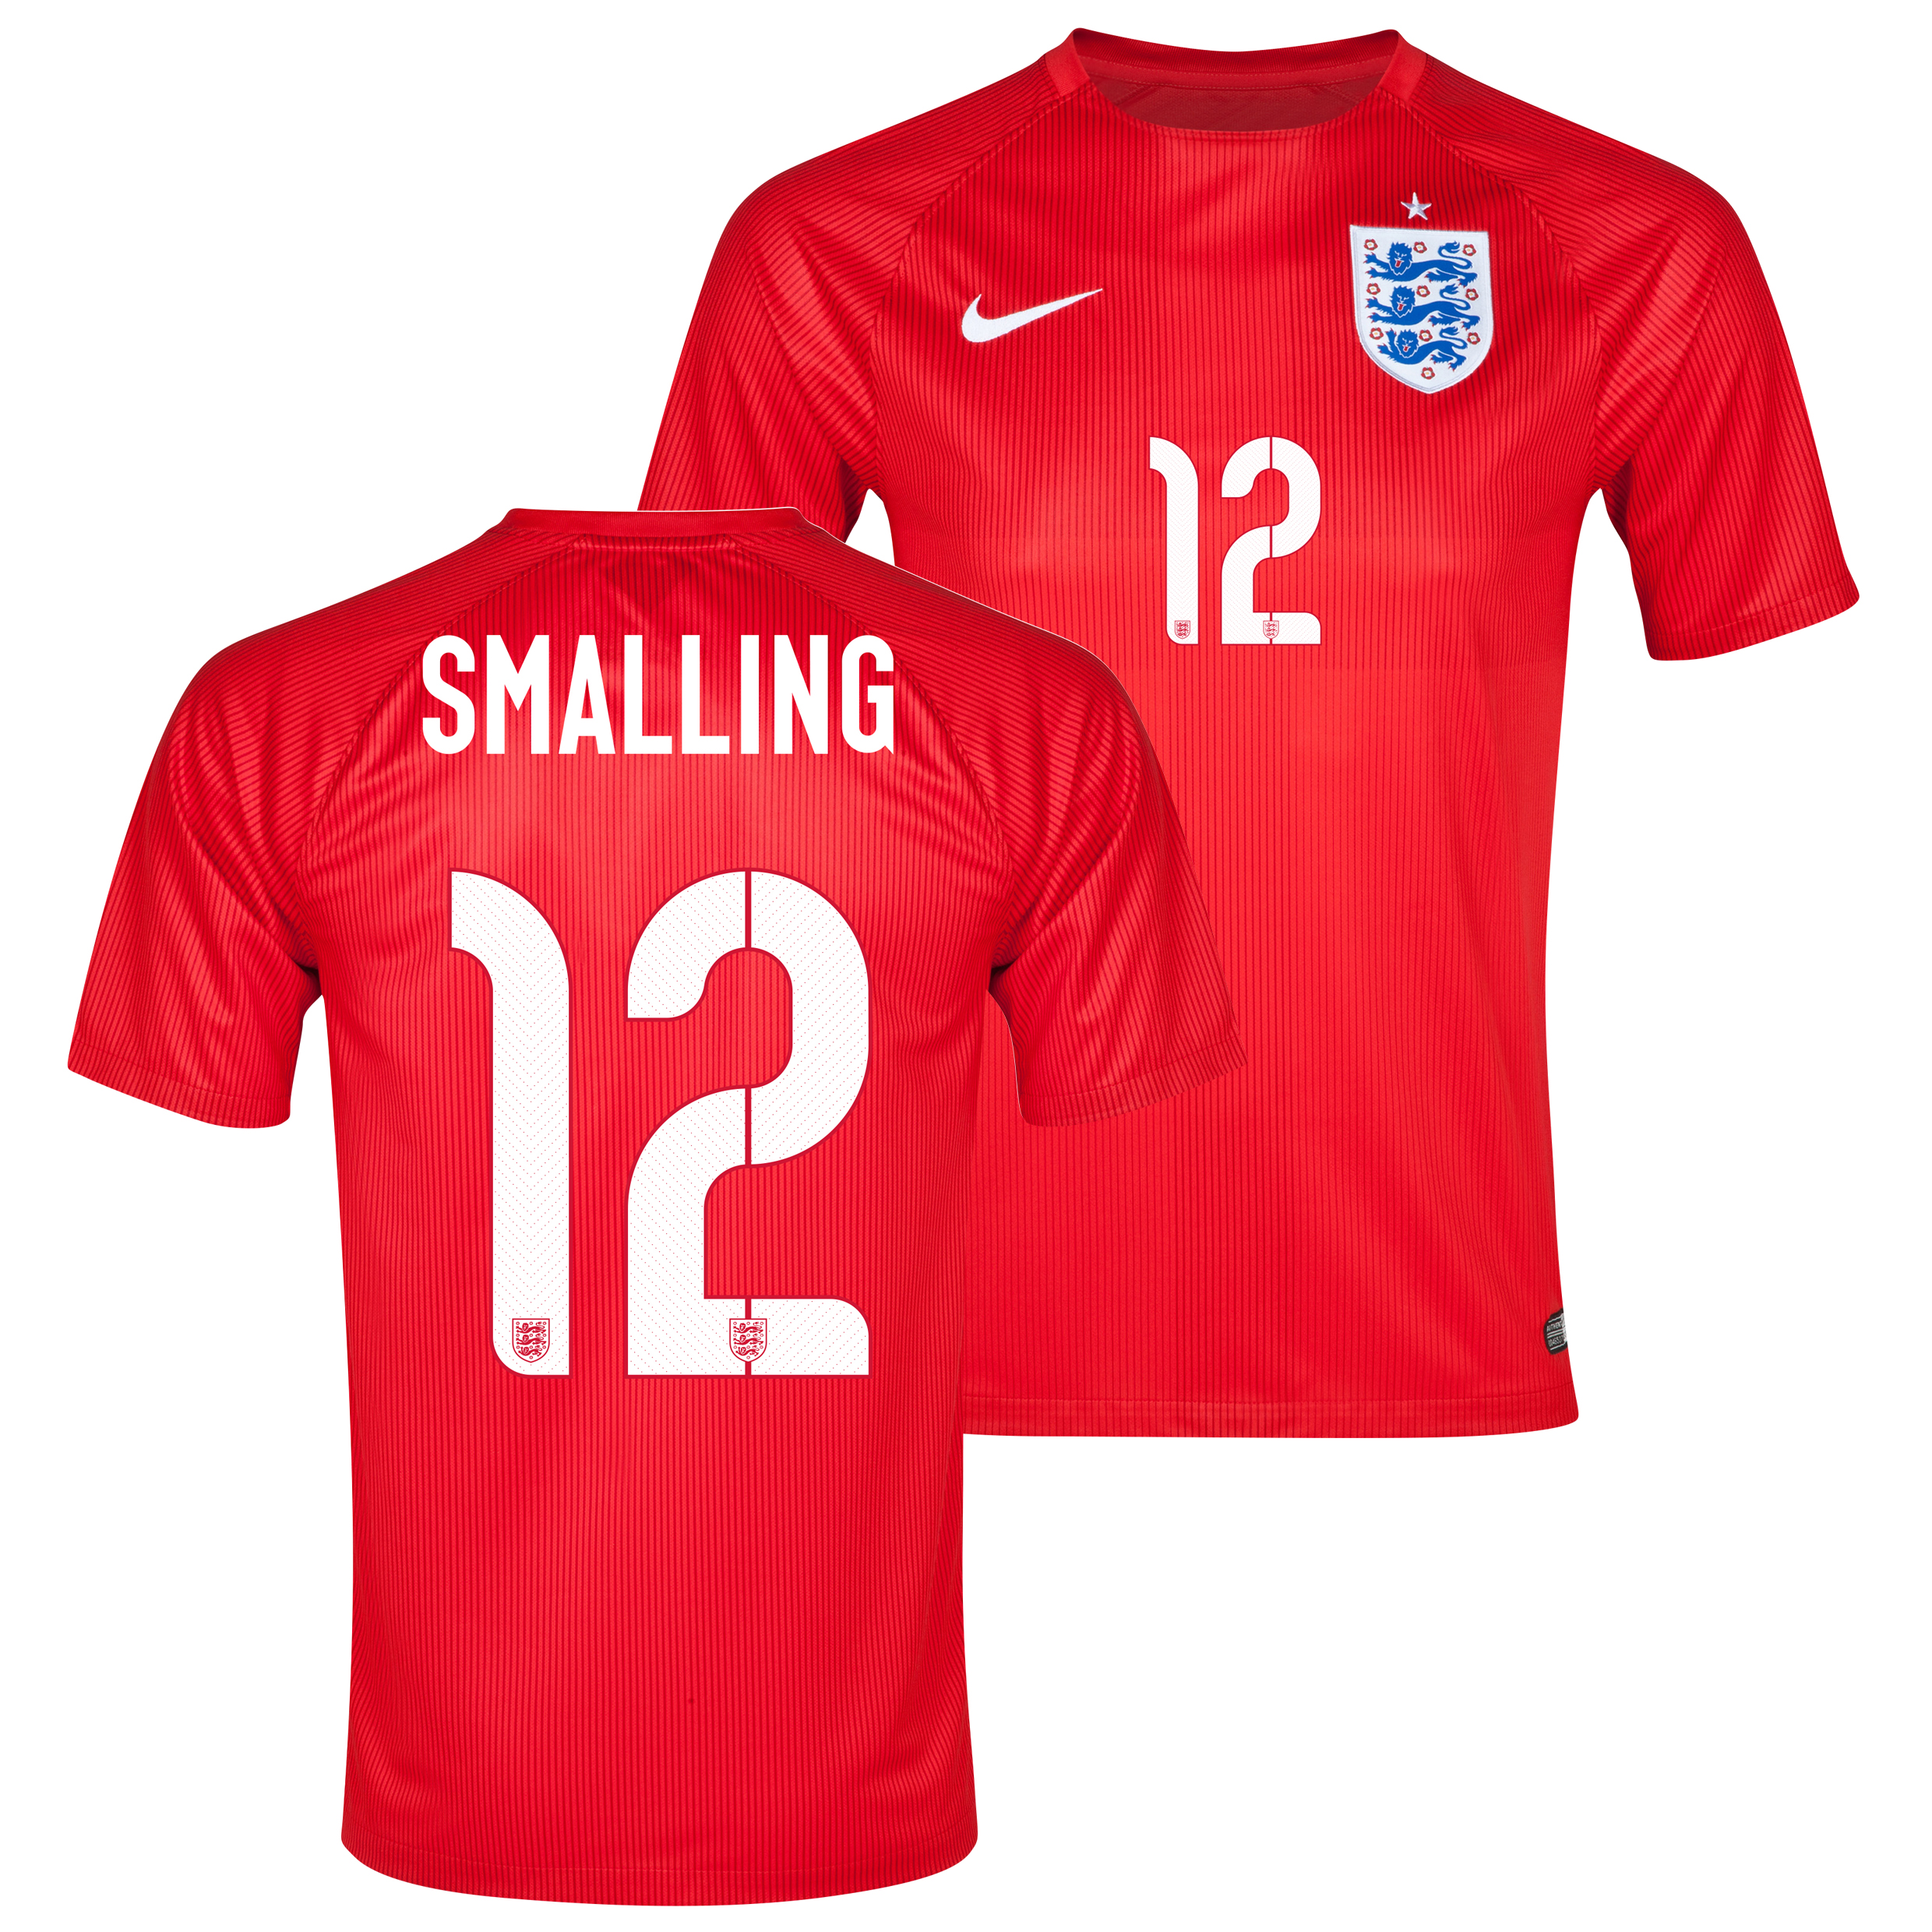 England Match Away Shirt 2014 Red with Smalling 12 printing